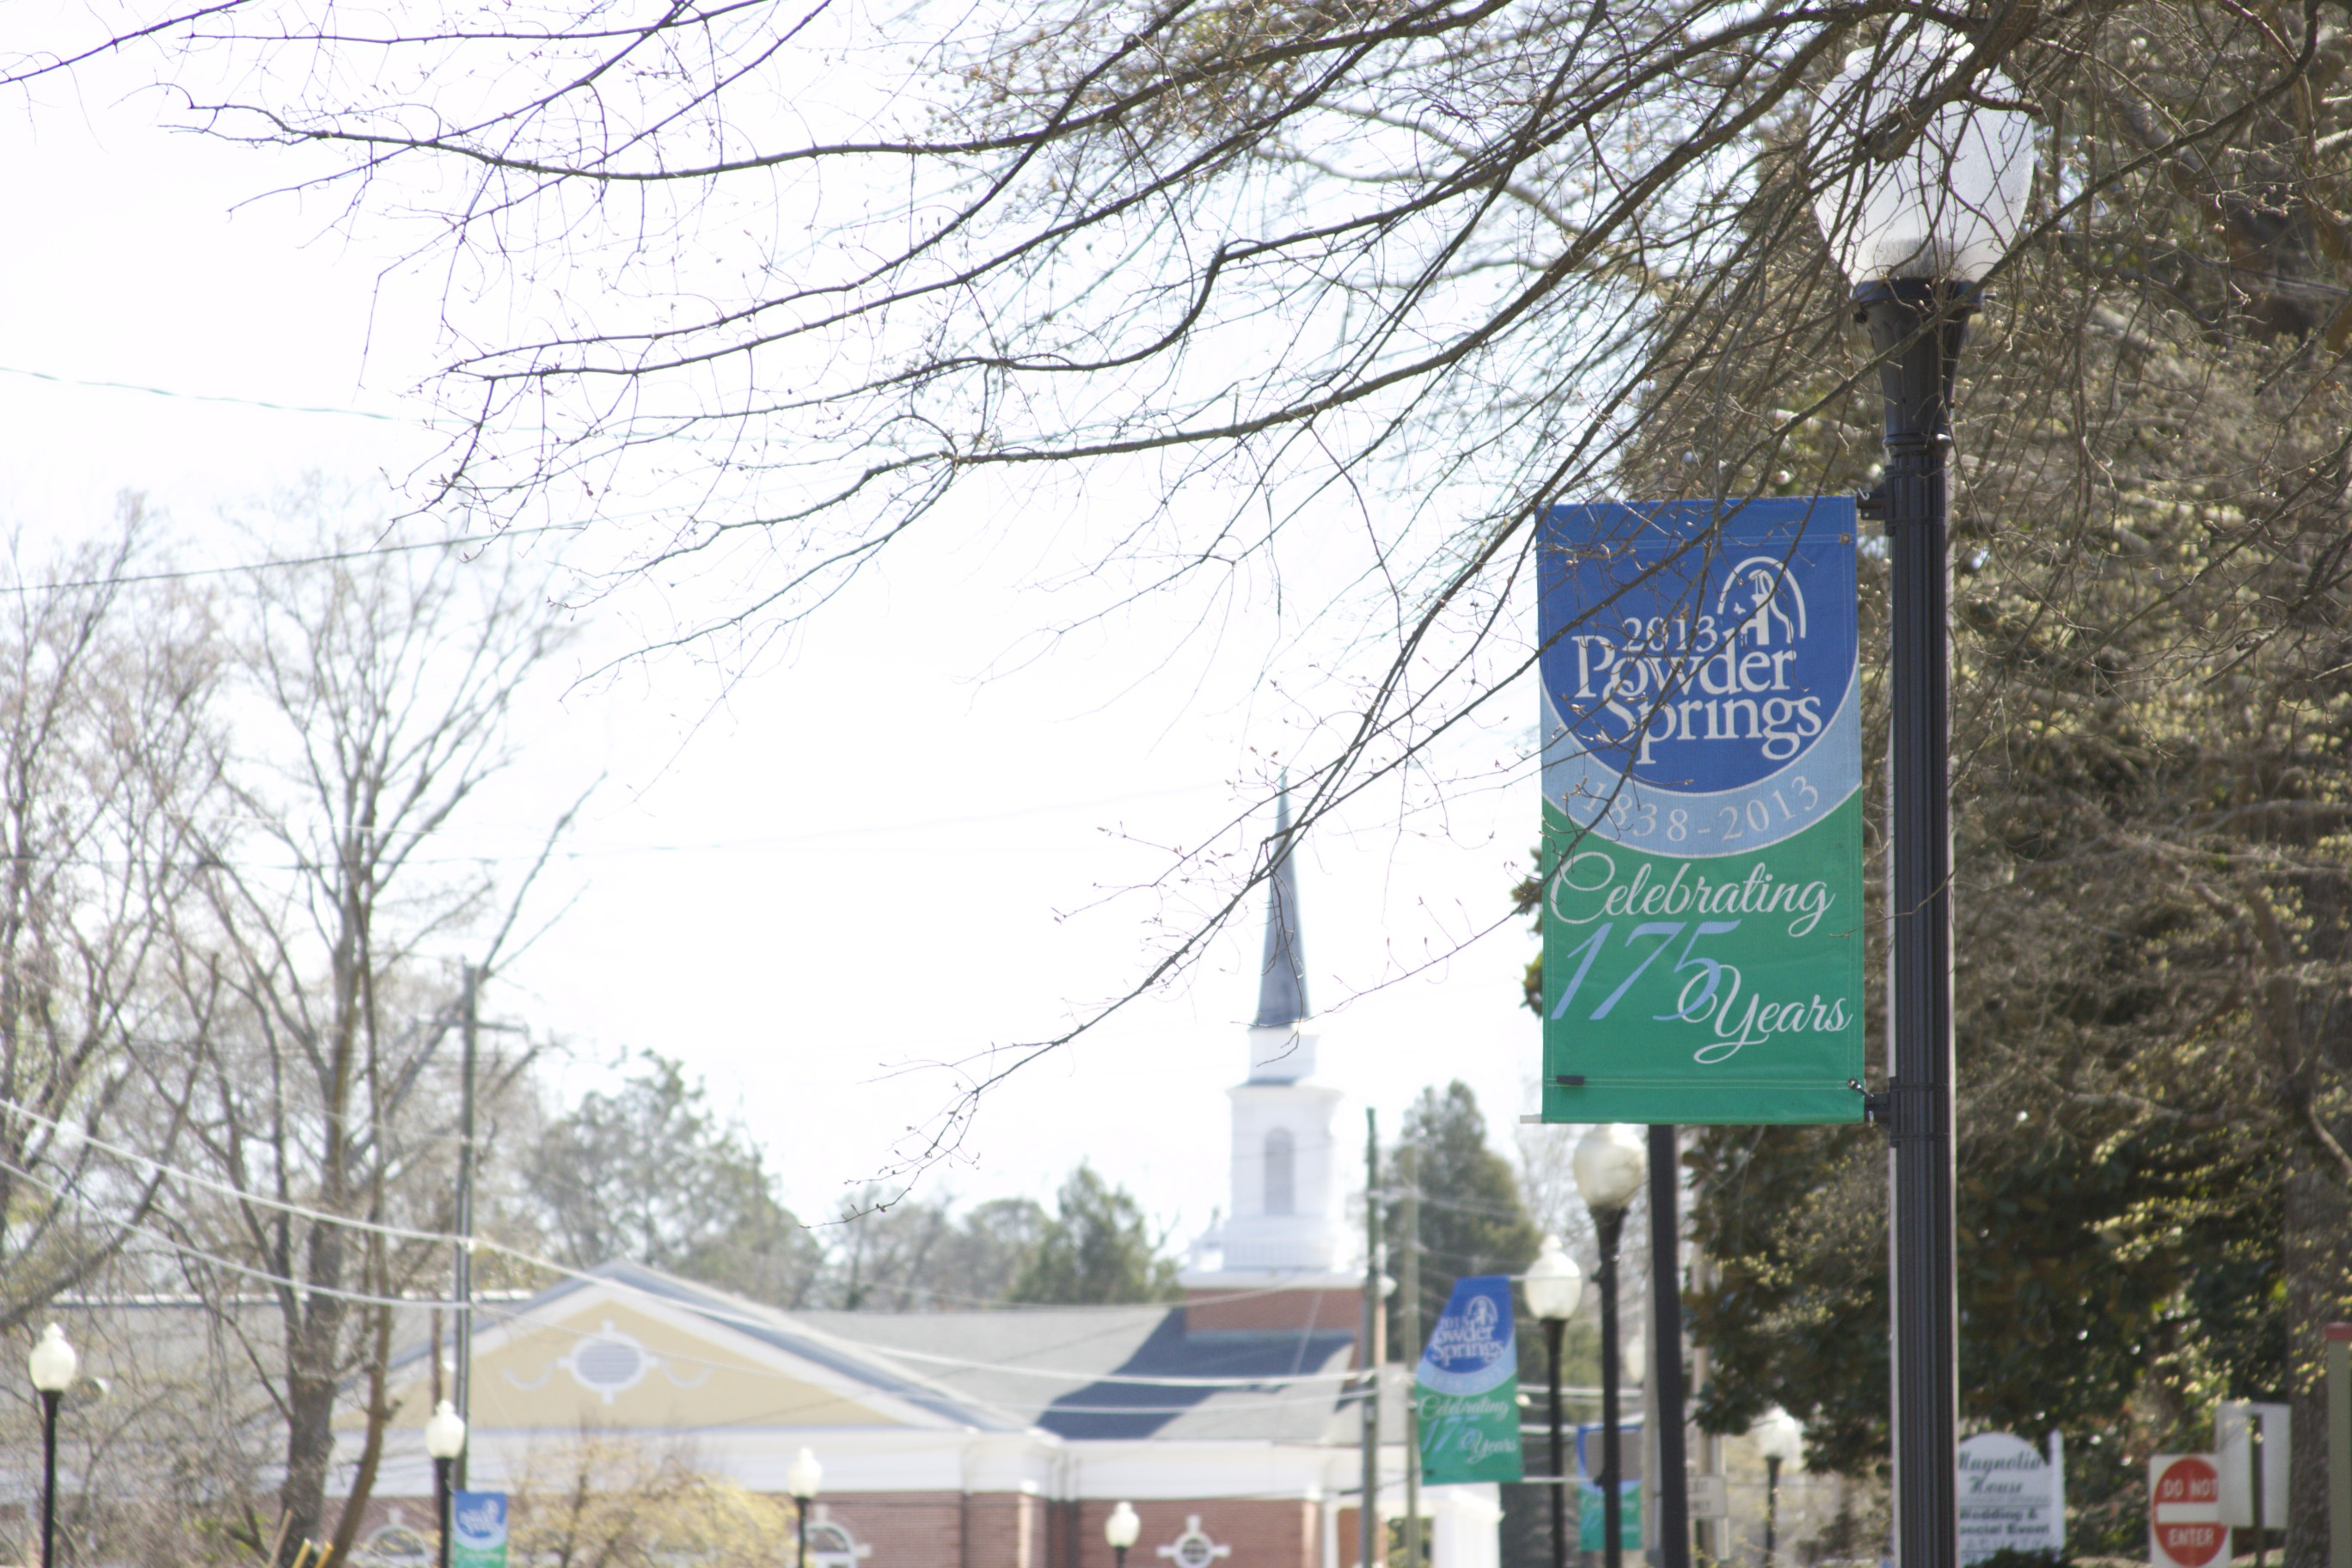 Powder Springs - Celebrating 175 Years